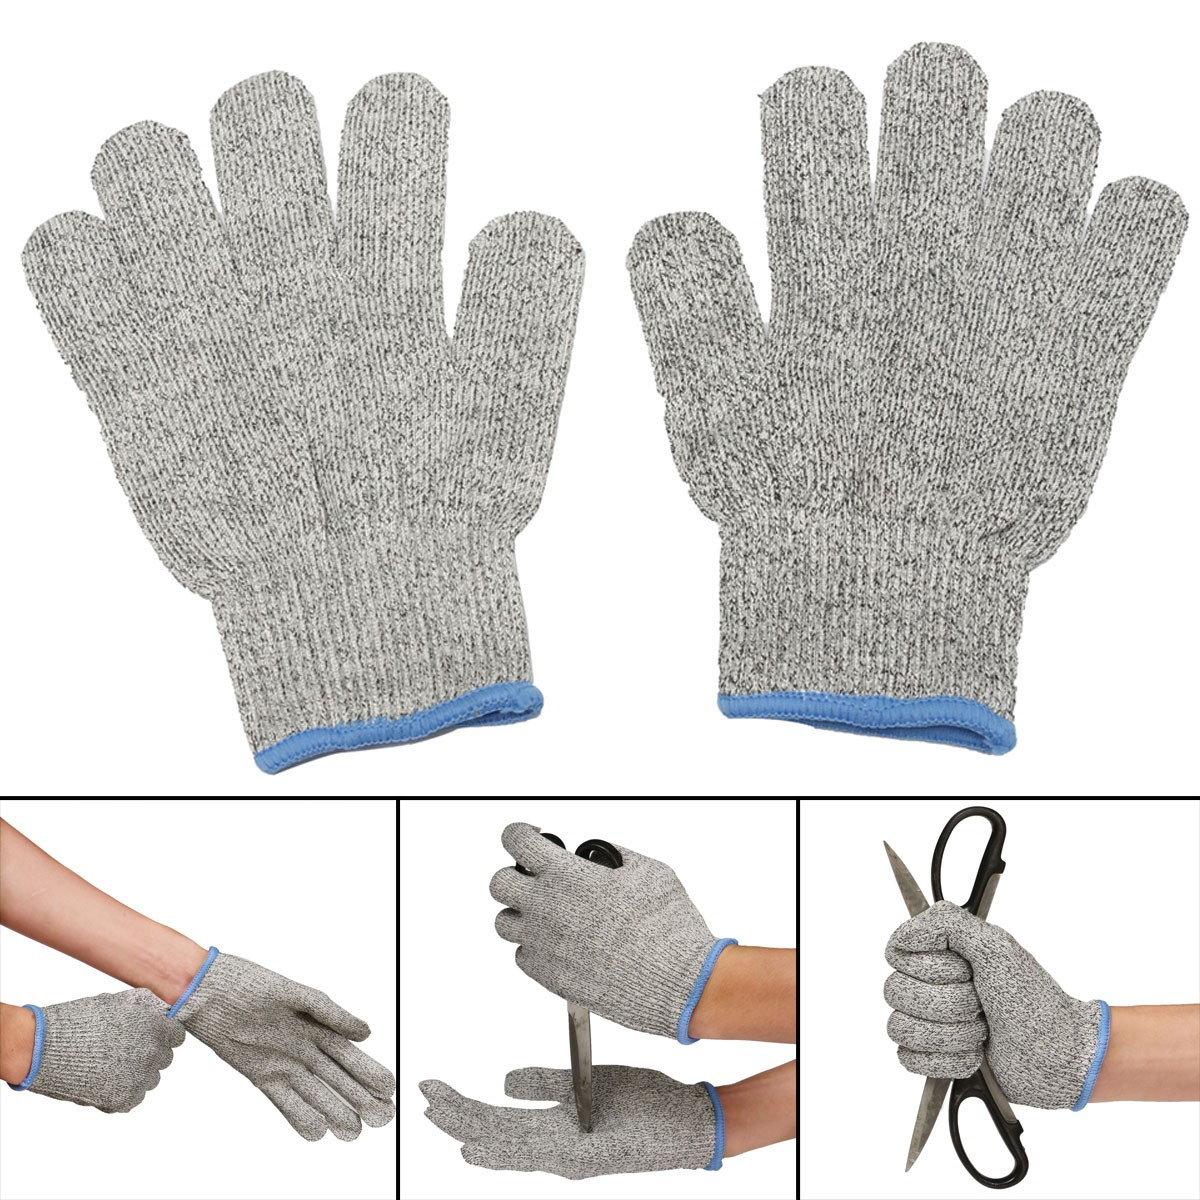 1 Pair Cut Resistant Gloves NoCry High Performance Level 5 Protection Anti  Slash | PrestoMall - Work Safety Equipment